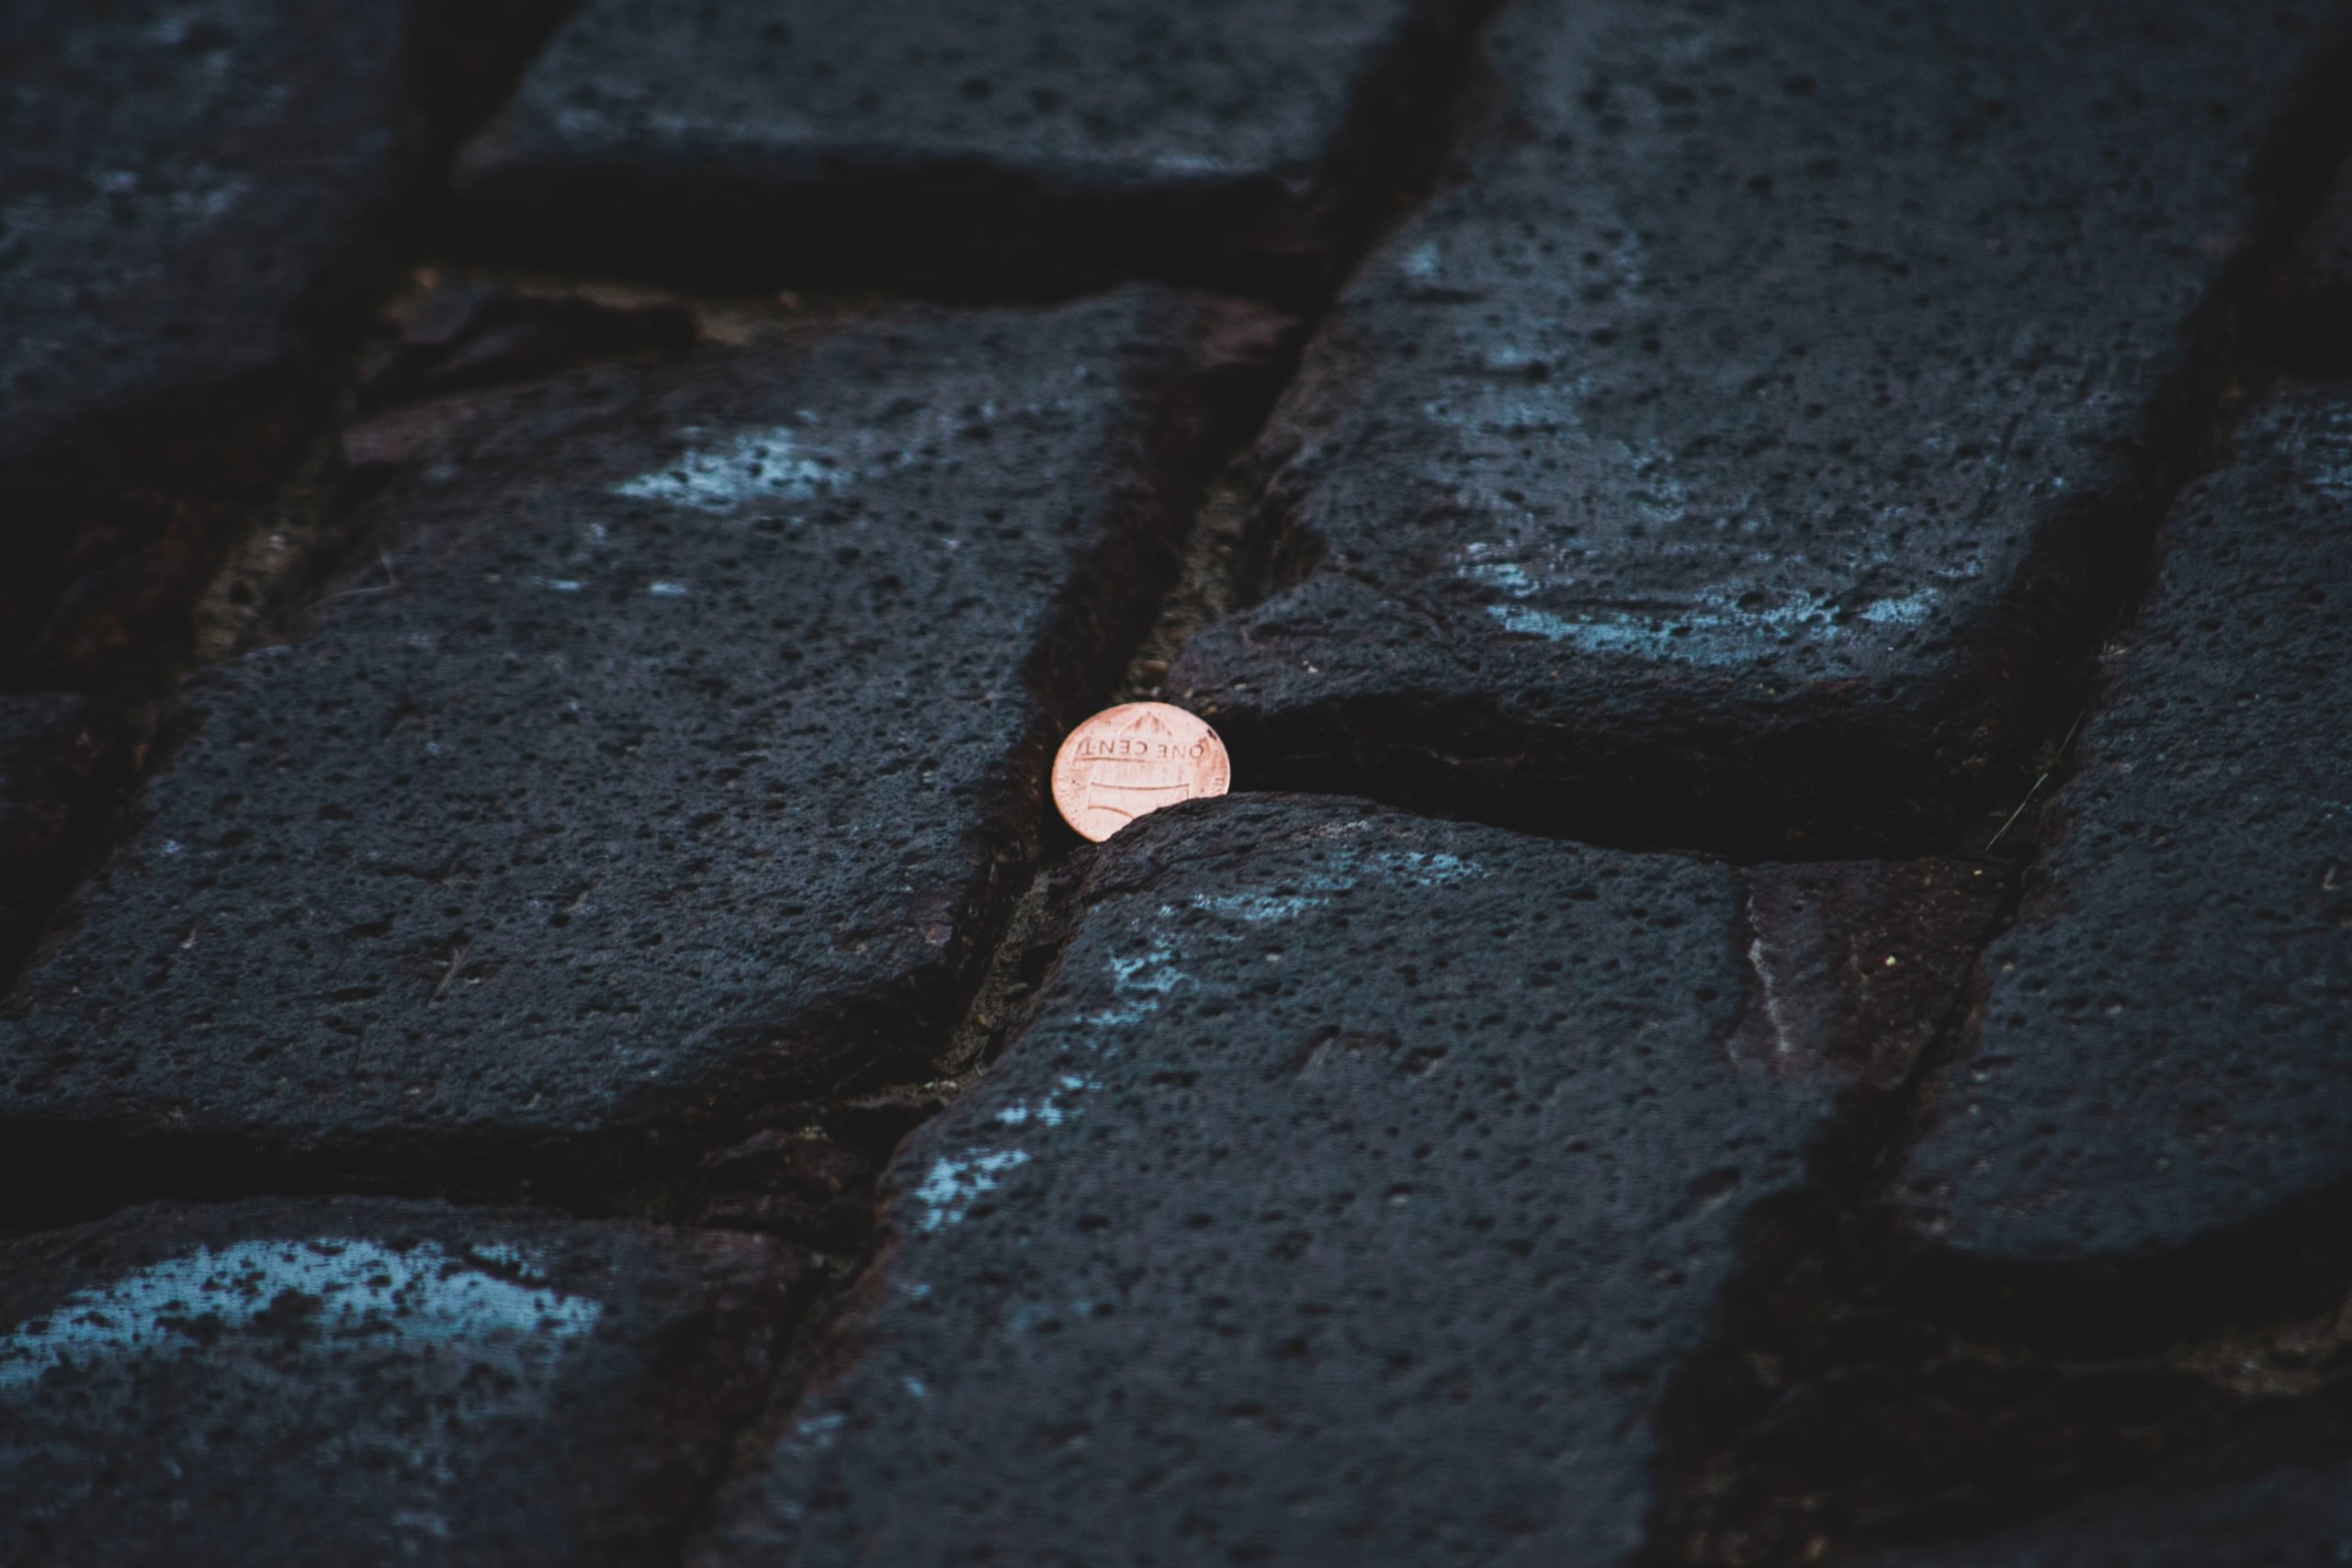 Black cobble stones with micro coin in the crack.